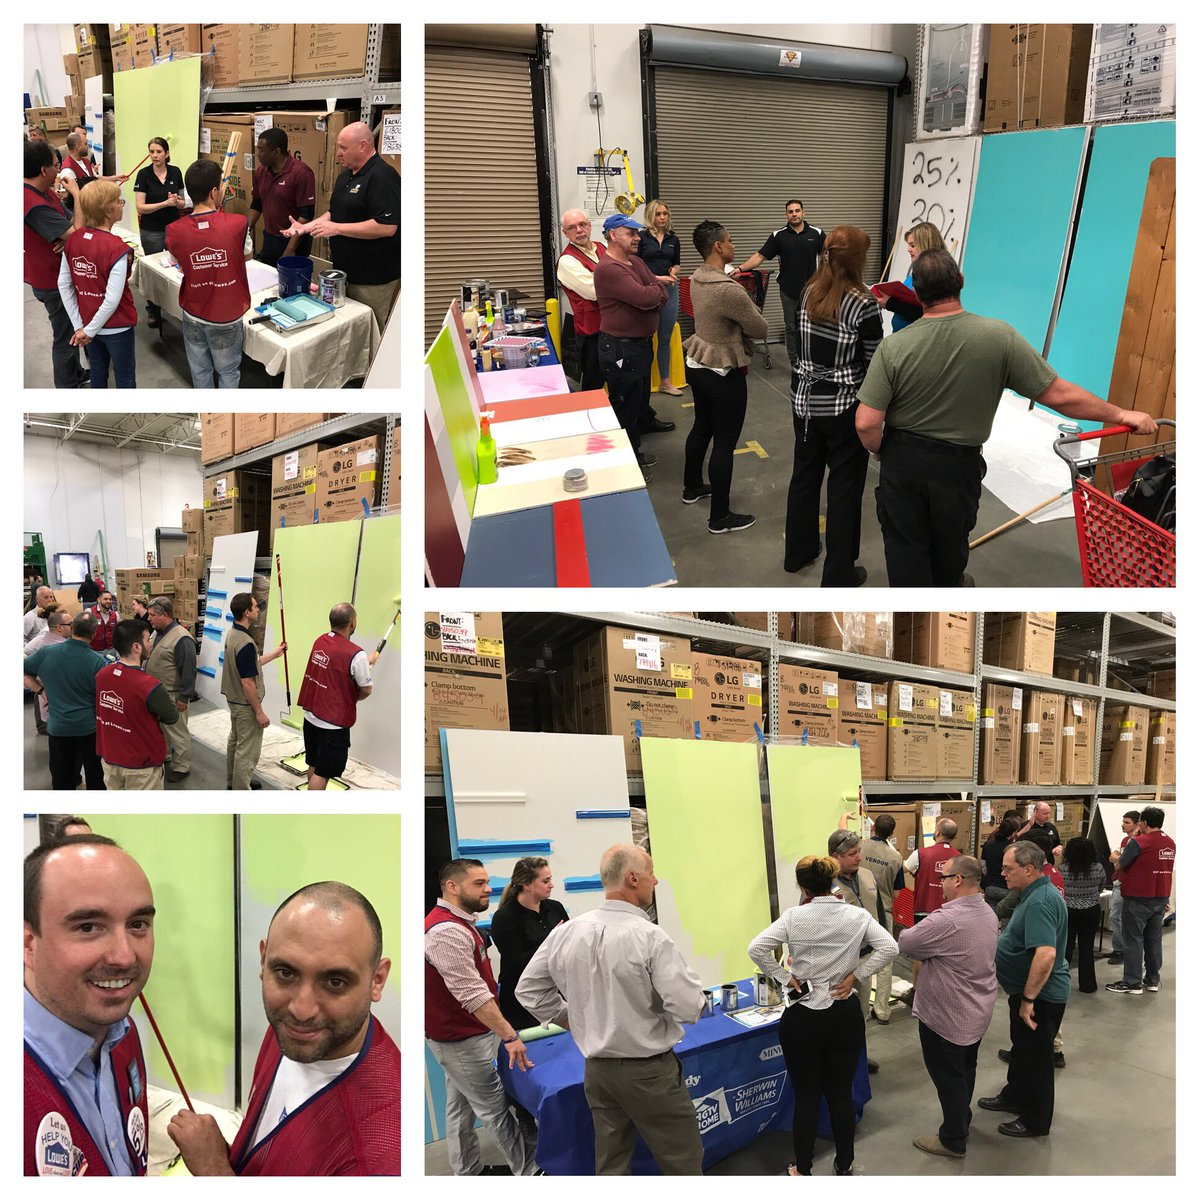 minela sljivo minelasljivo twitter q1 paint experience training in 1597 market 1230 getting all the product knowledge to wintheseason valspar paint sherwinwilliamspic twitter com